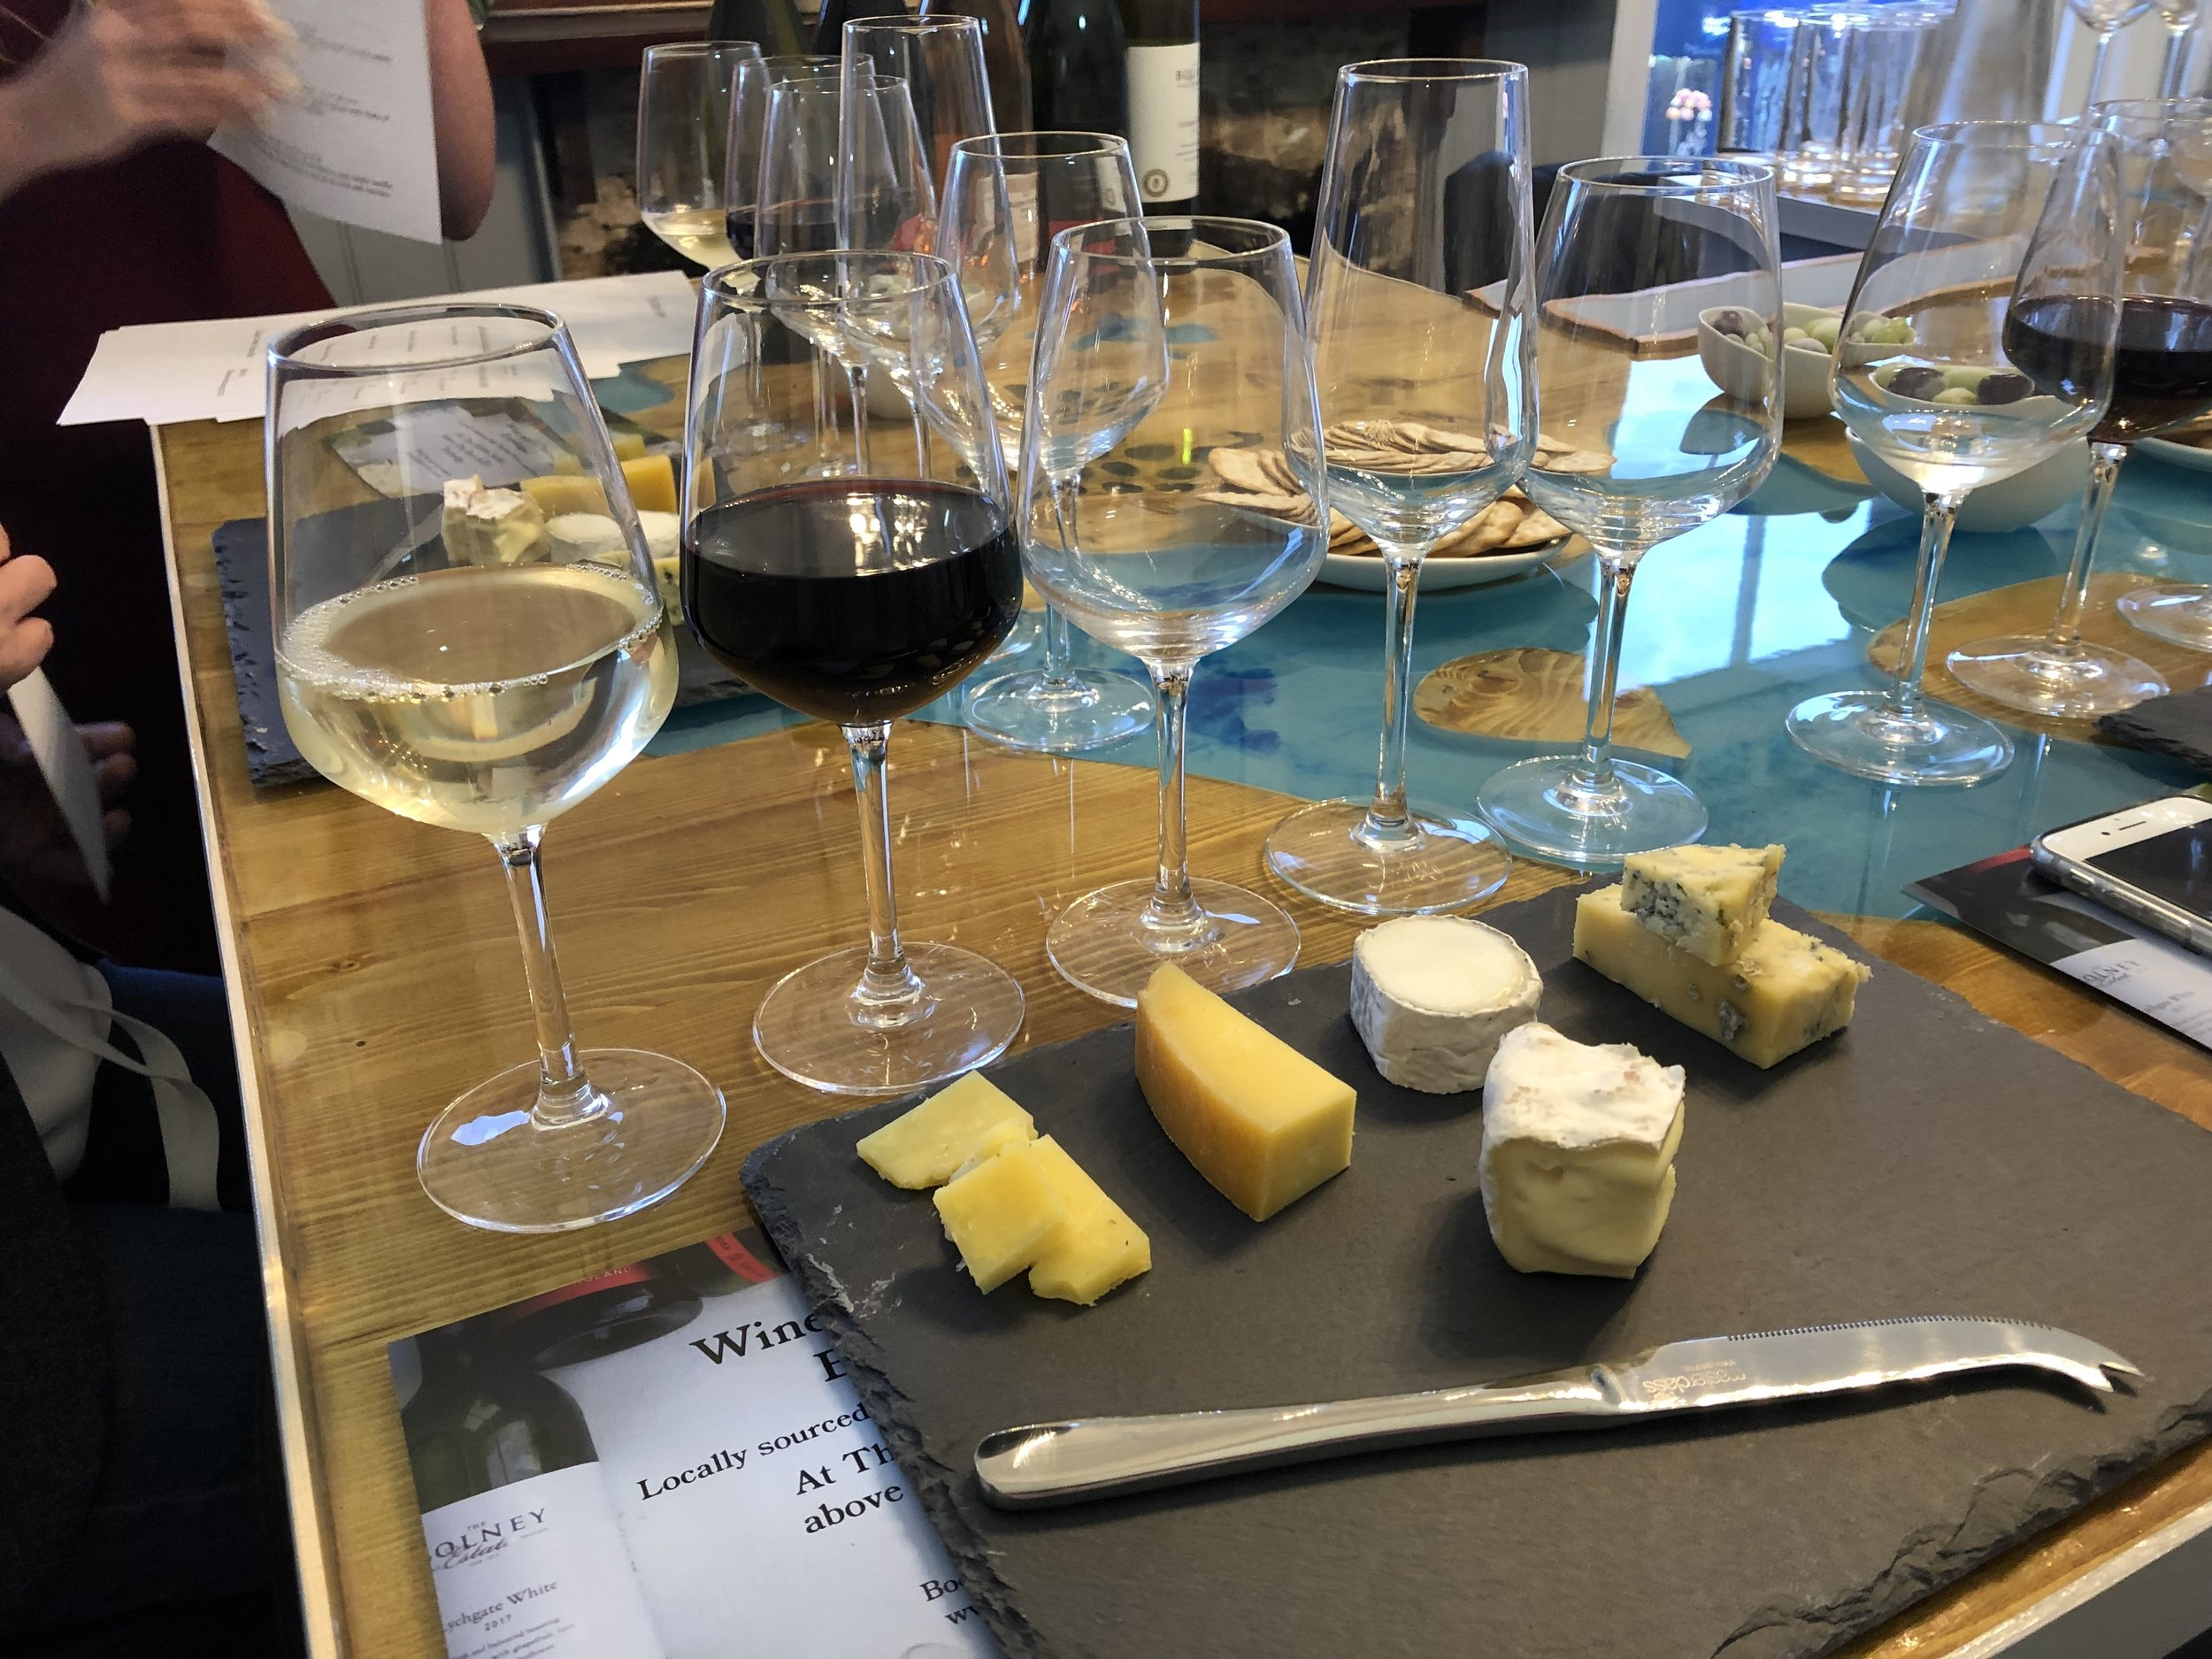 Five English (local) wines accompanied by five English cheeses